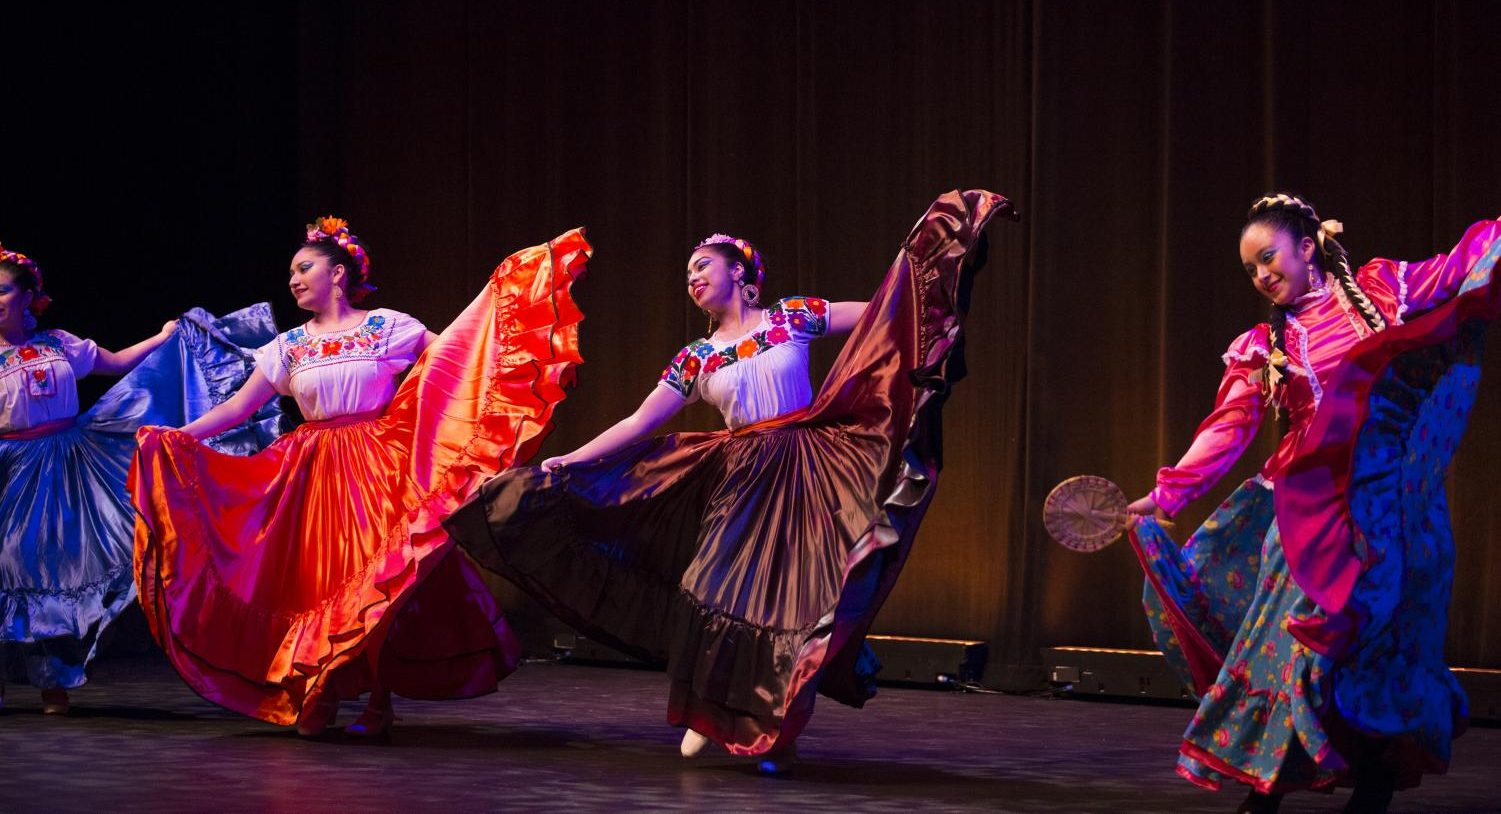 Ballet Folklorico Quetzalcoatl performing at the Frida Kahlo Exhibition Announcement in Nov. 2018. They will also be performing at Frida Fest on Sept 8. Photo by COD Newsroom Flickr